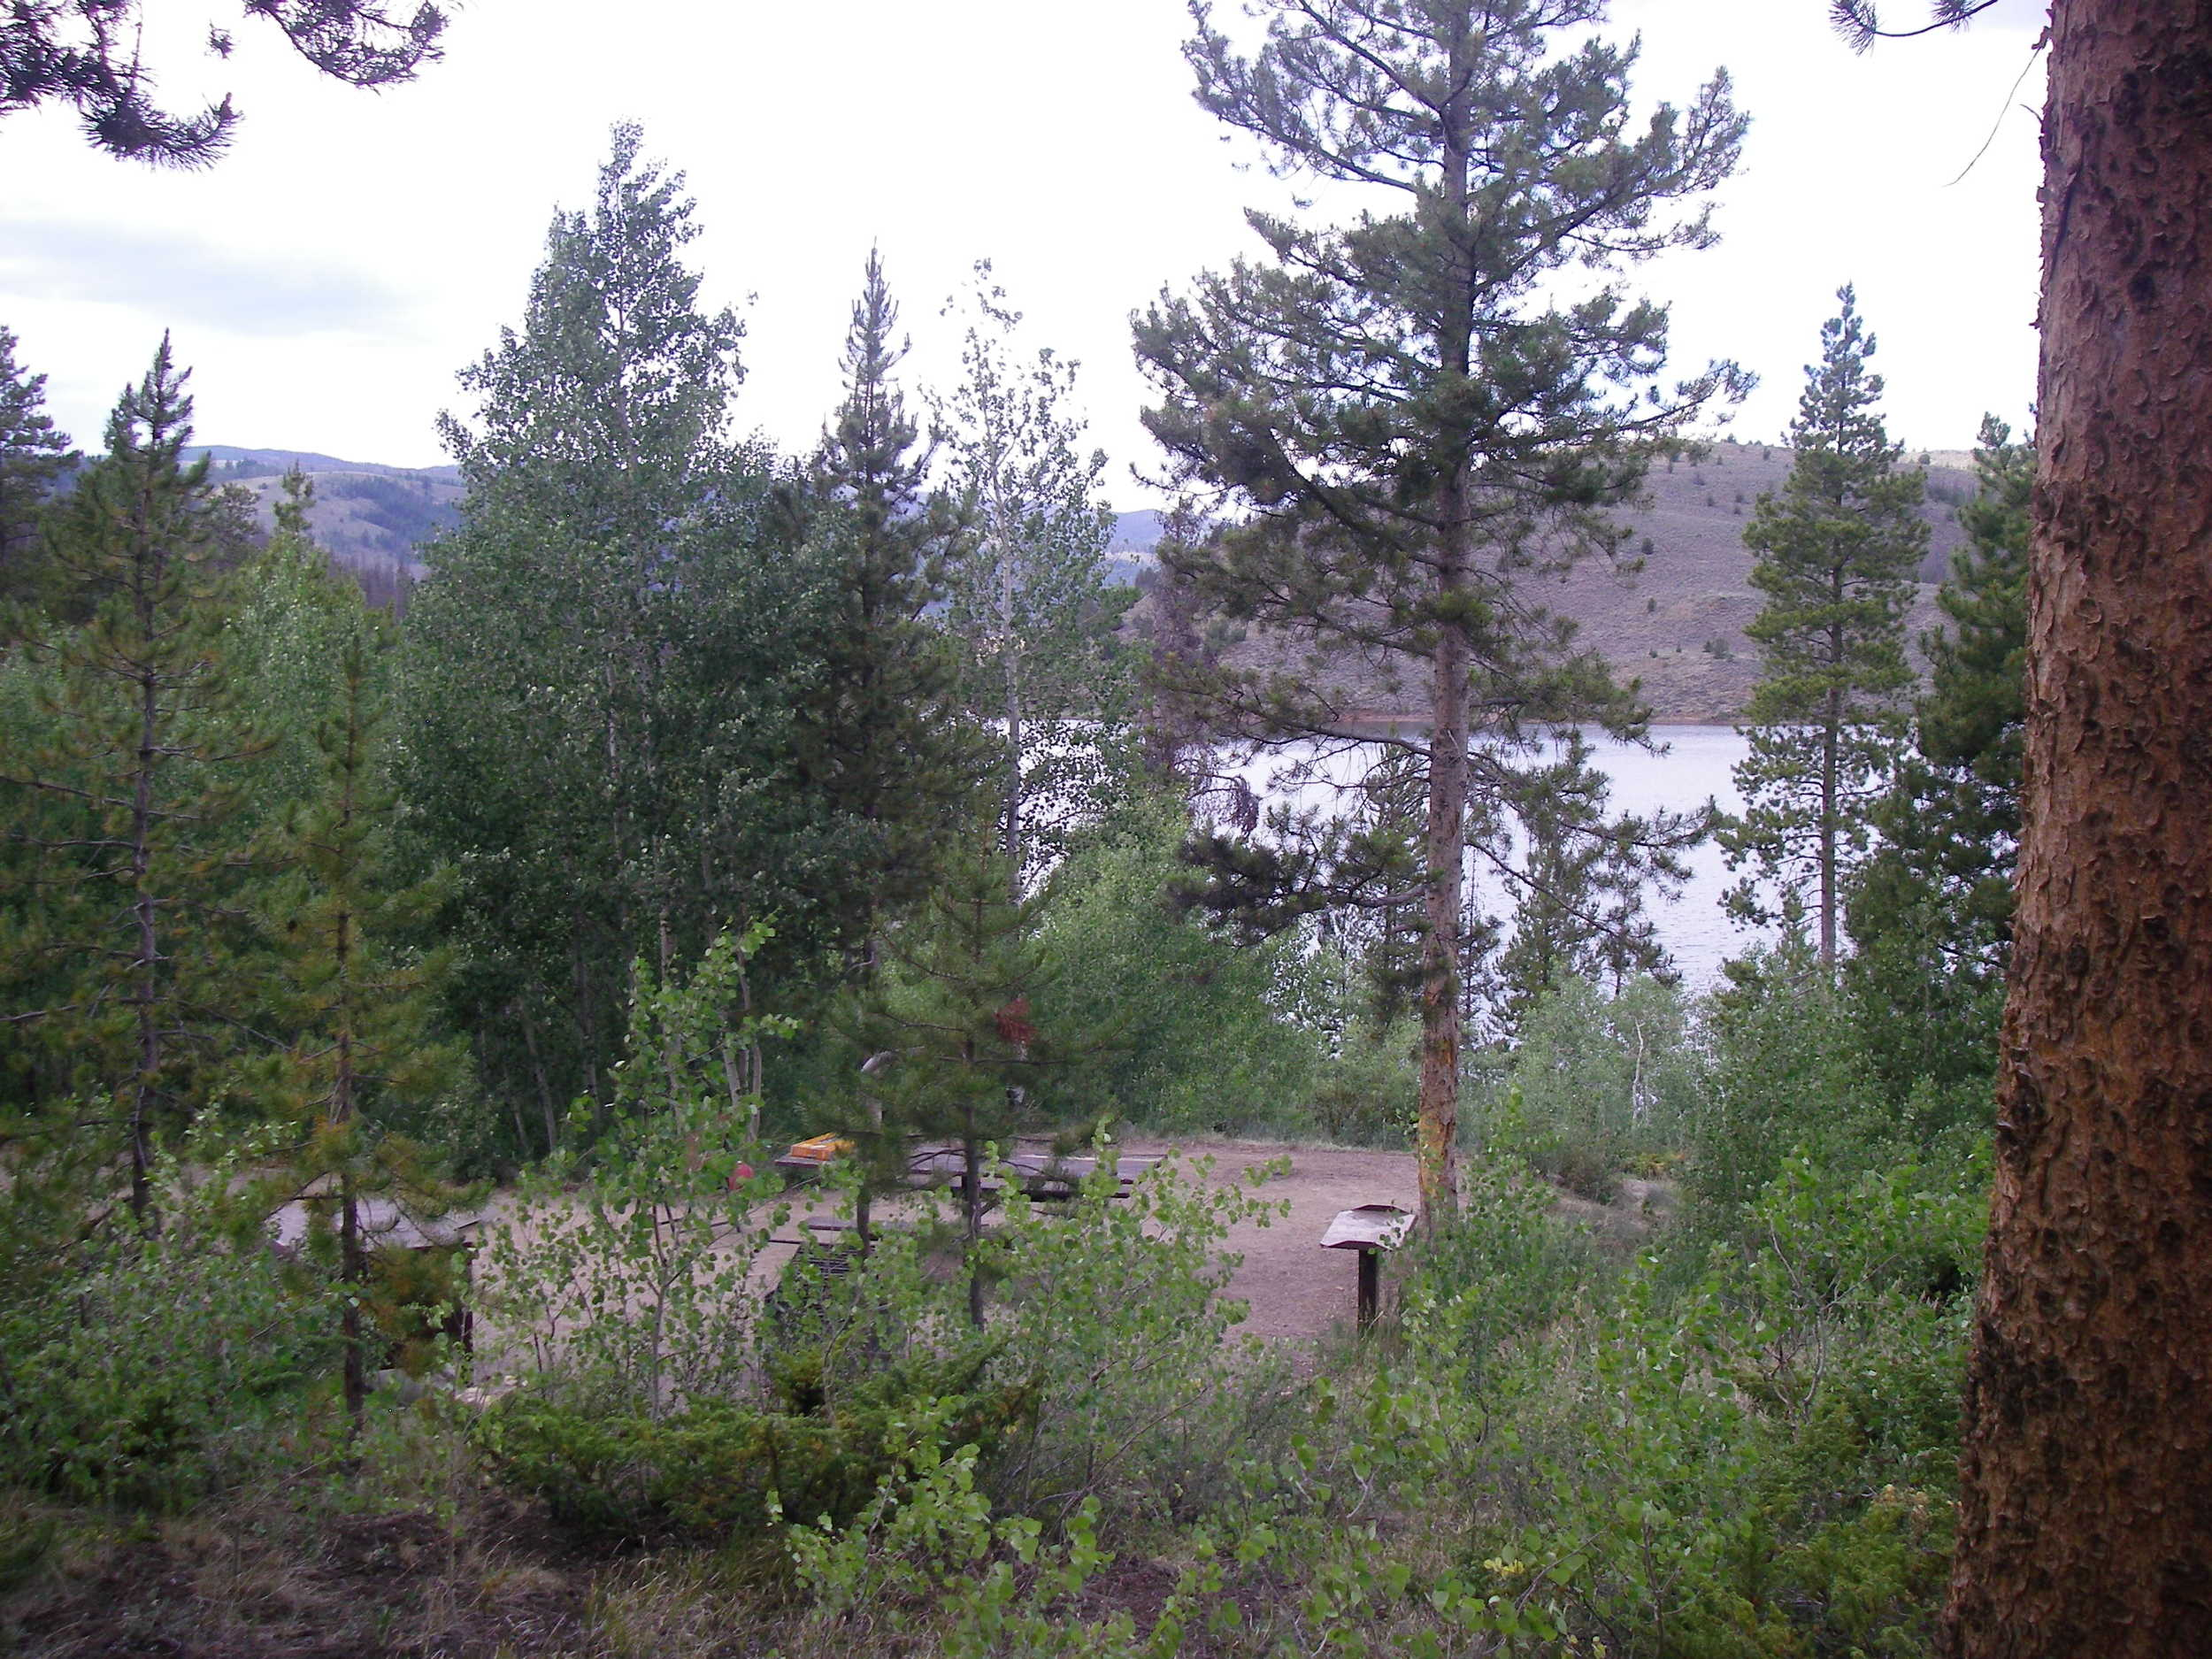 High elevation camping